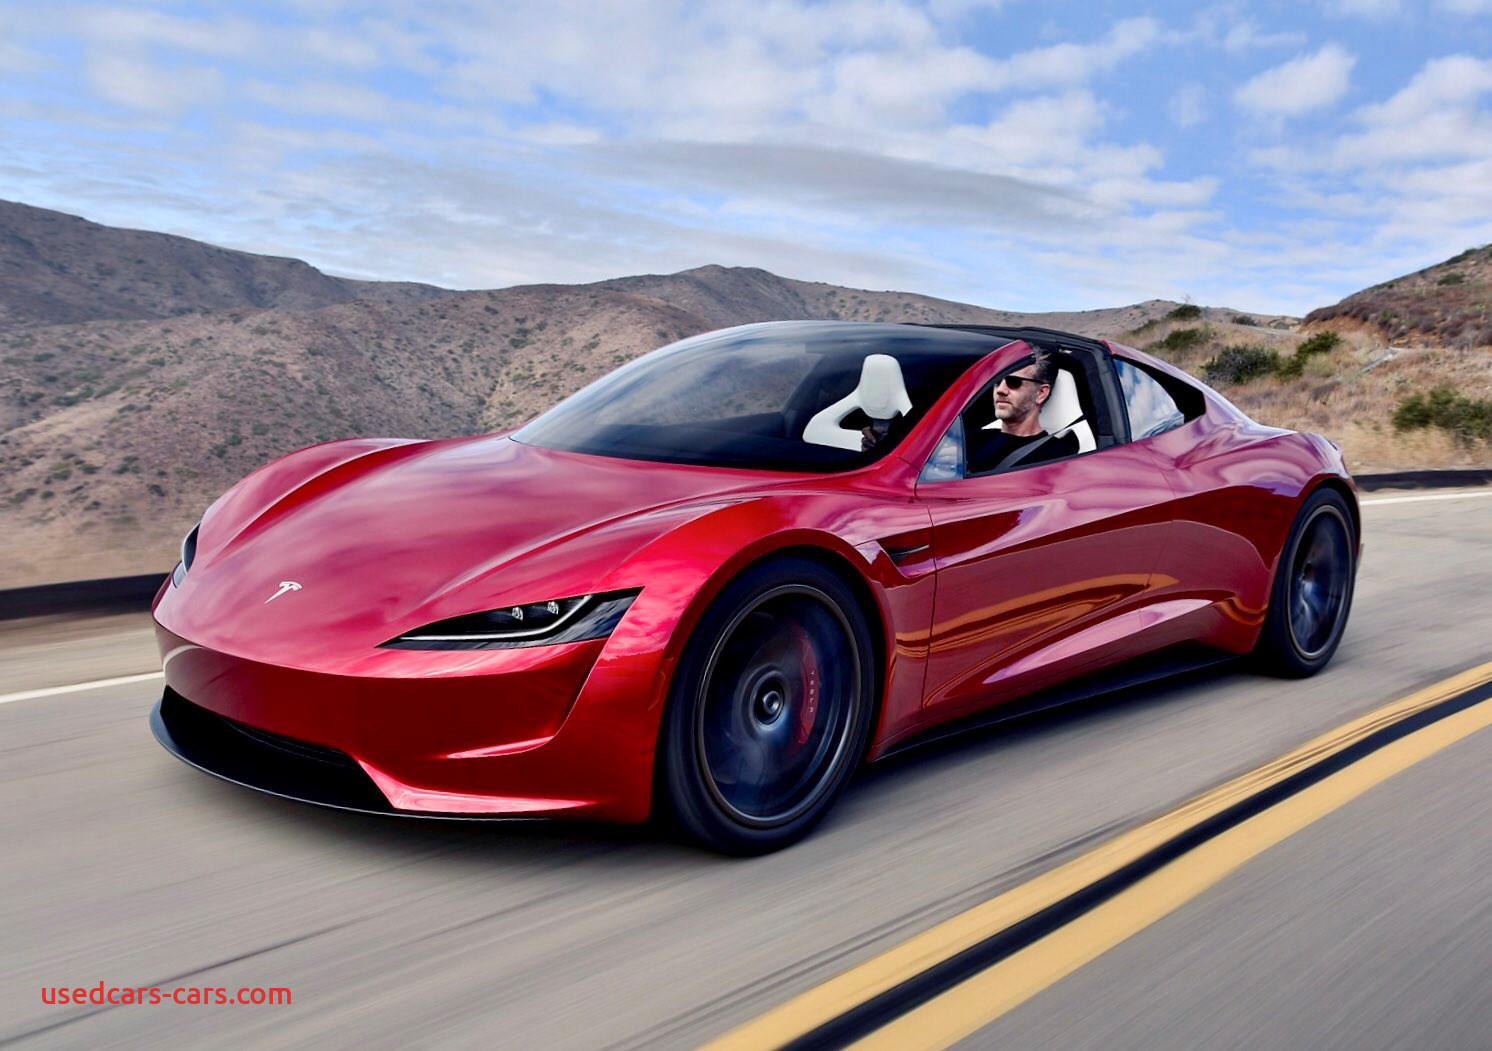 Where Tesla Car From Beautiful New Tesla Roadster Musk Hints at Rocket Powered